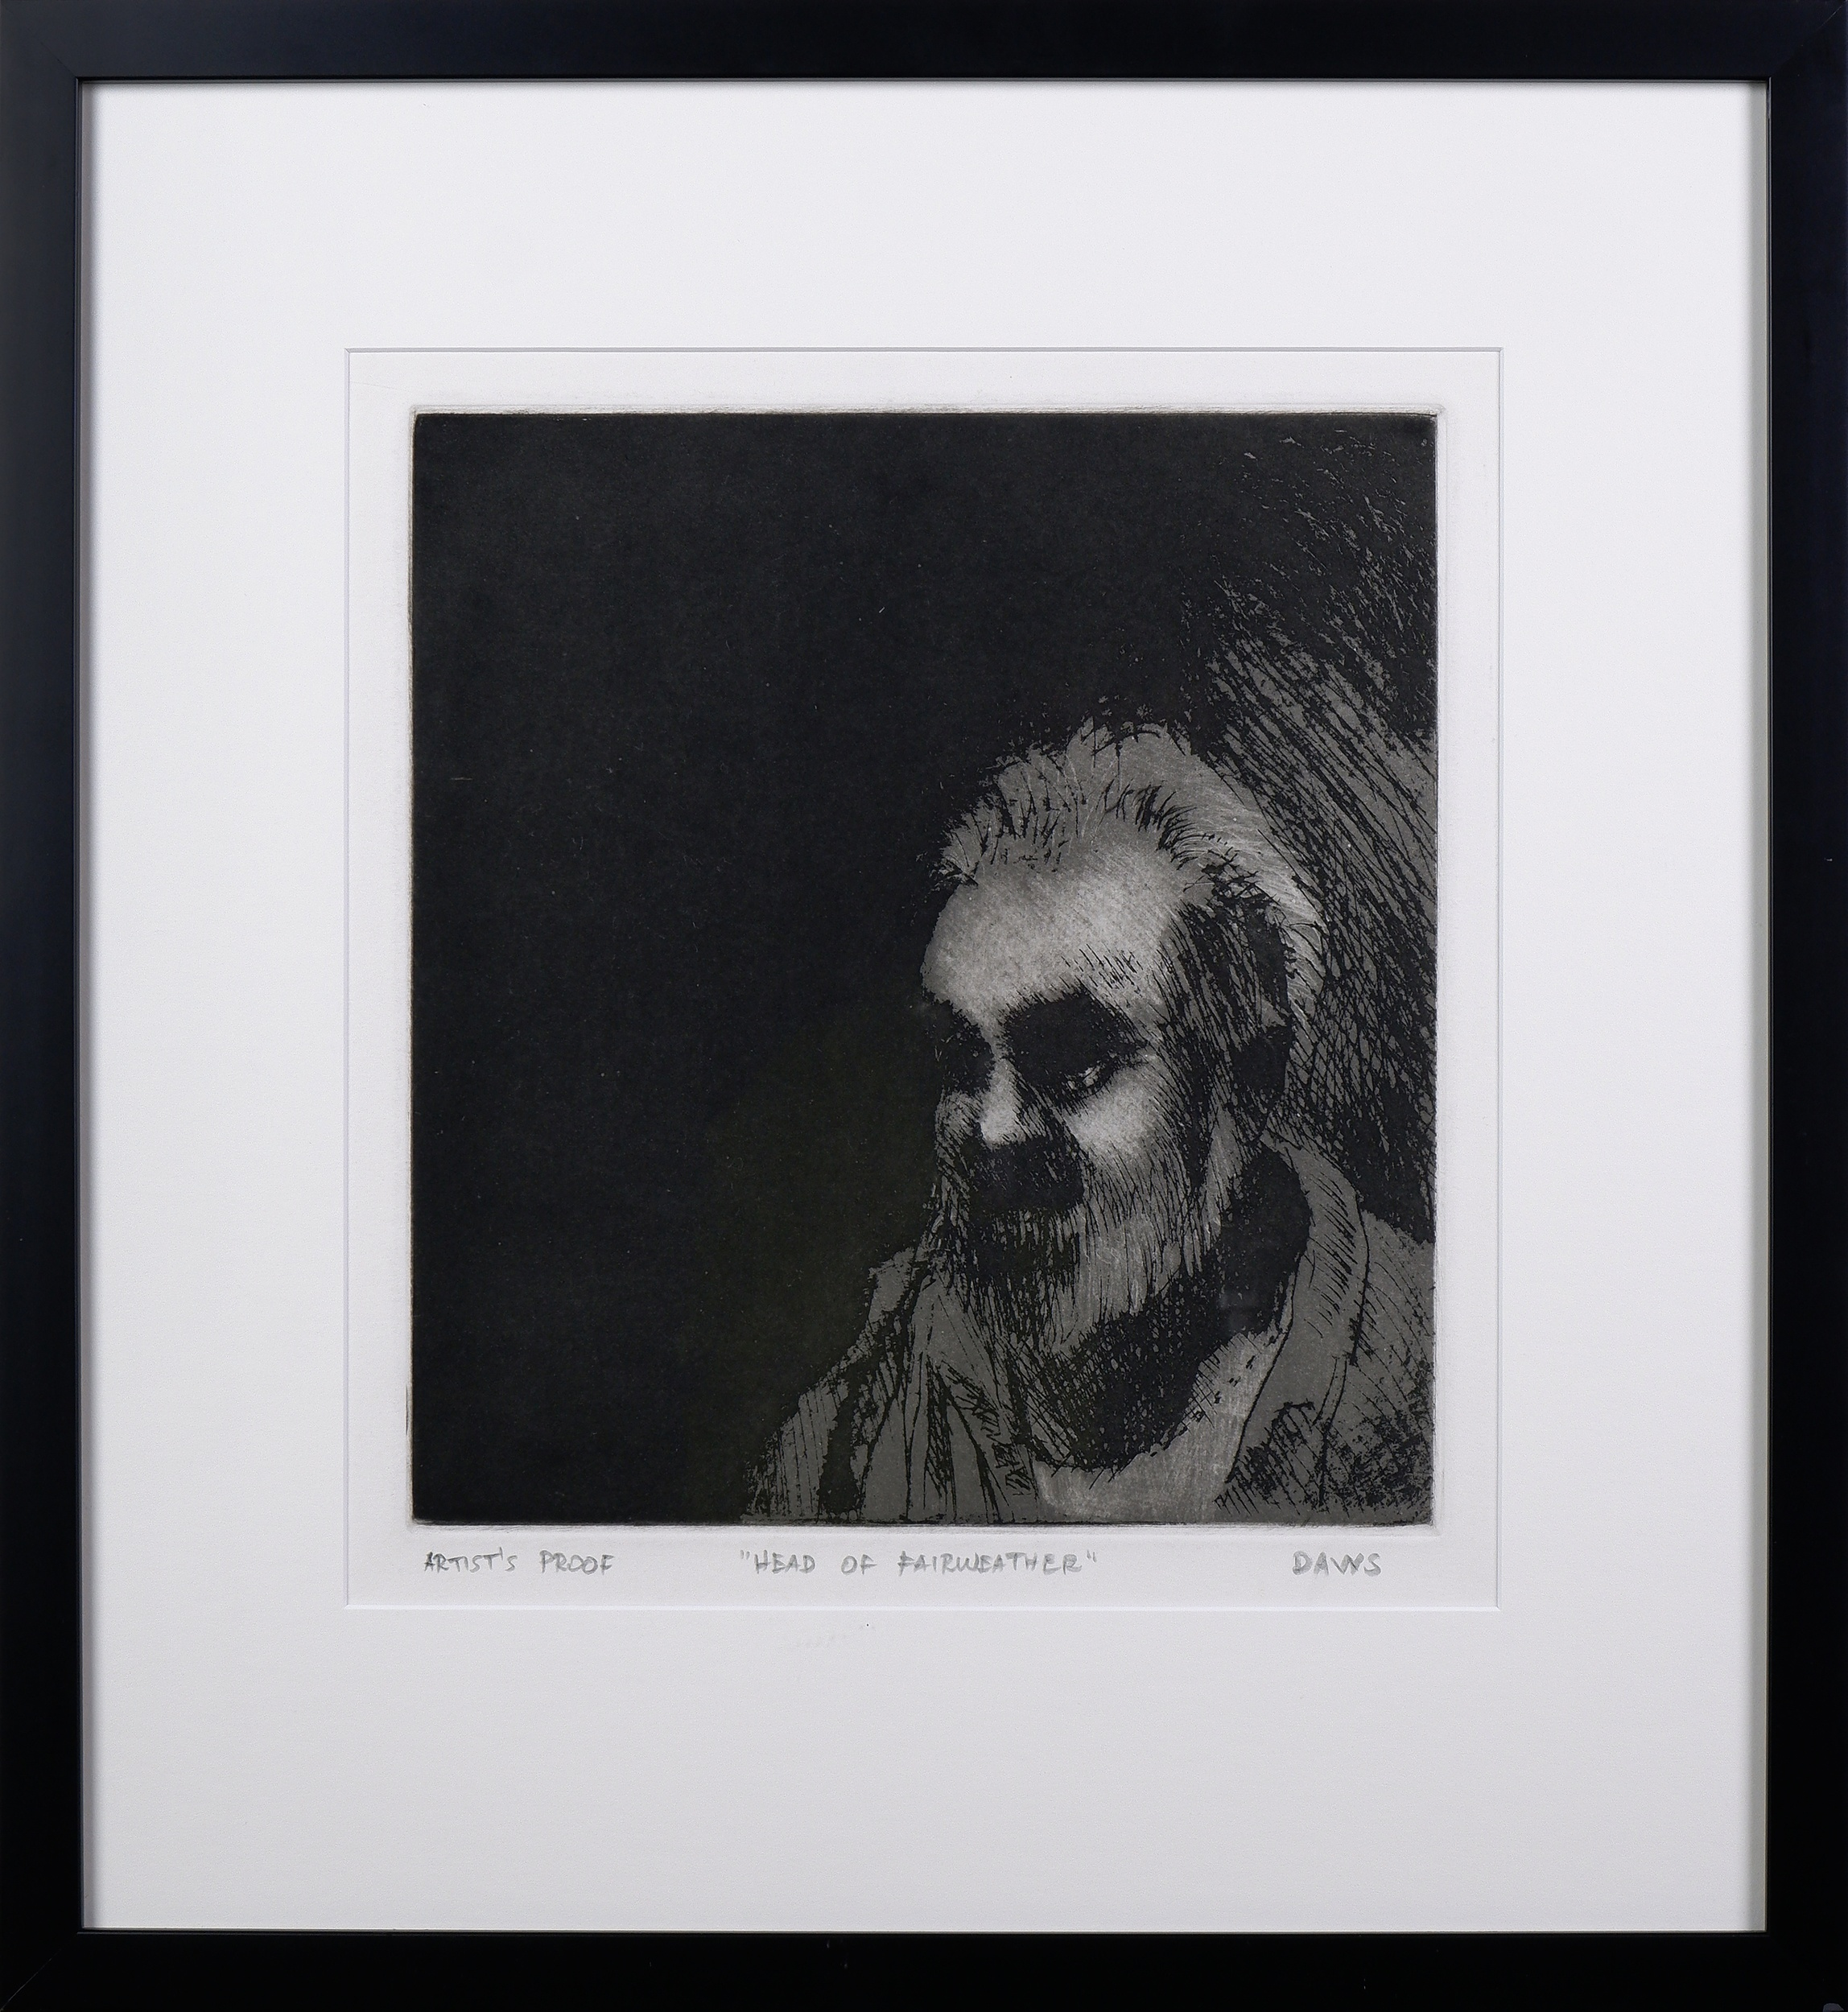 'Lawrence Daws (born 1927), Head of Fairweather 1977/78, Etching A/P, 27.5 x 25 cm (image size)'